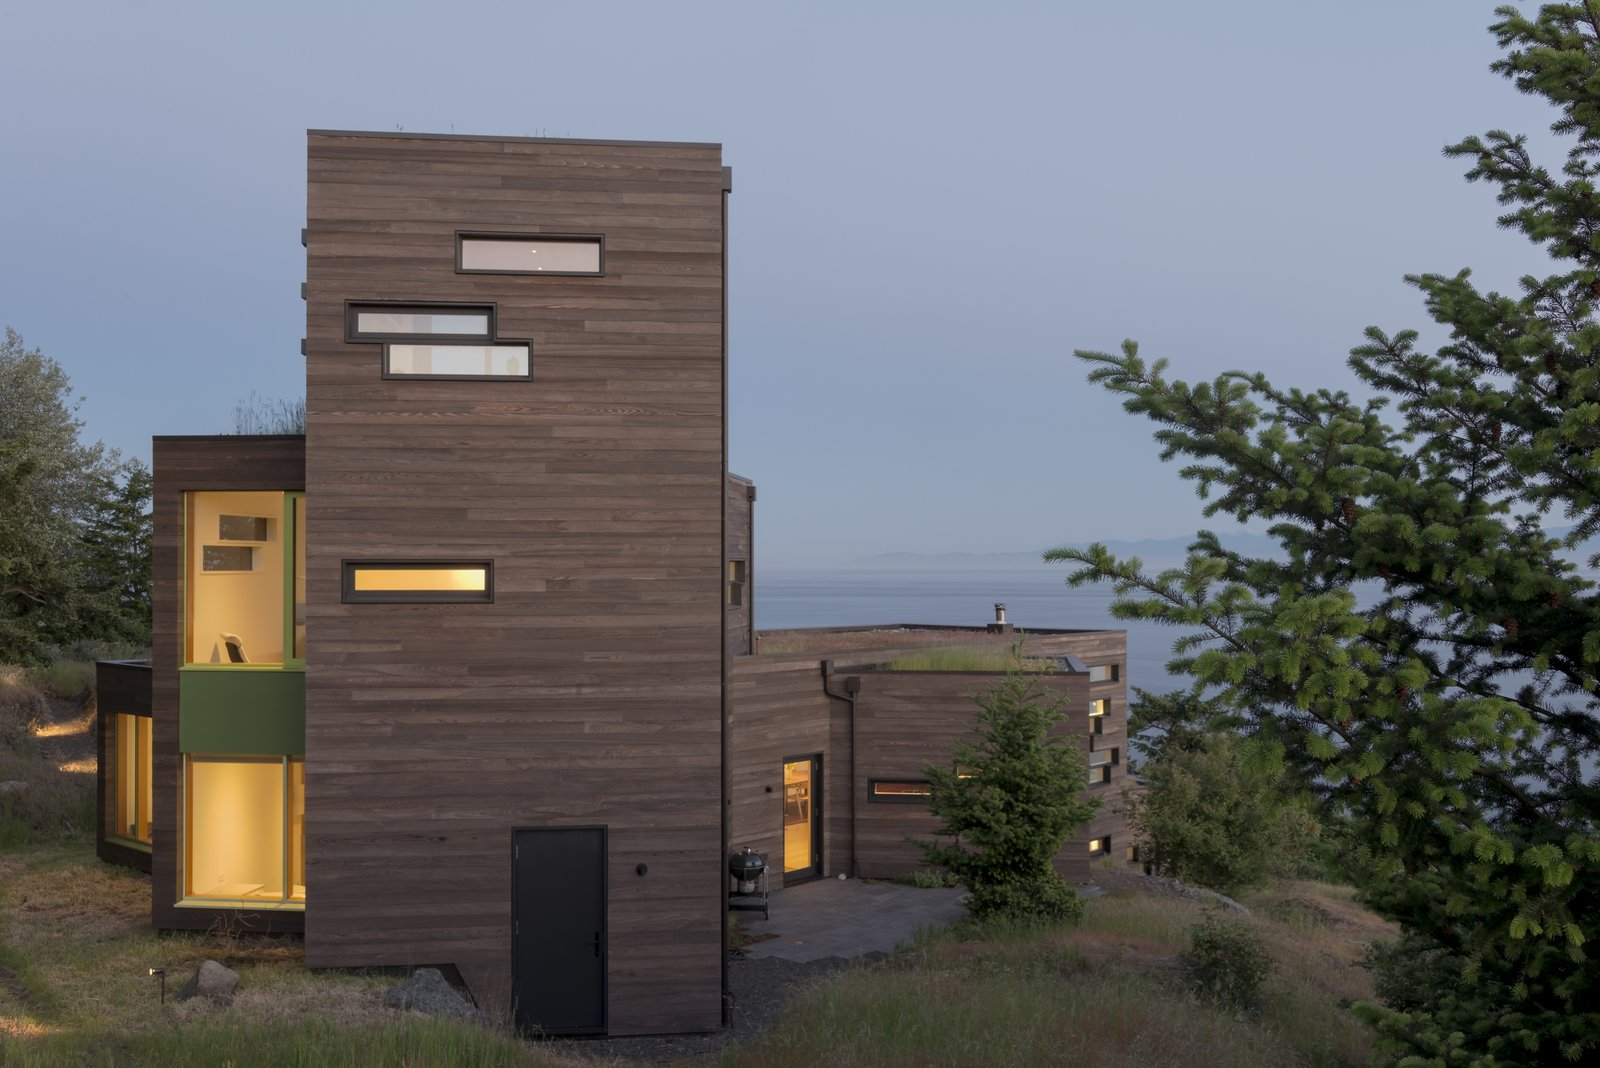 Viewed from the hill above, the structure rises to peer out over the water while firmly anchored back to the ground. Tagged: Exterior, House, Green Roof Material, and Wood Siding Material. Bailer Hill by Prentiss + Balance + Wickline Architects